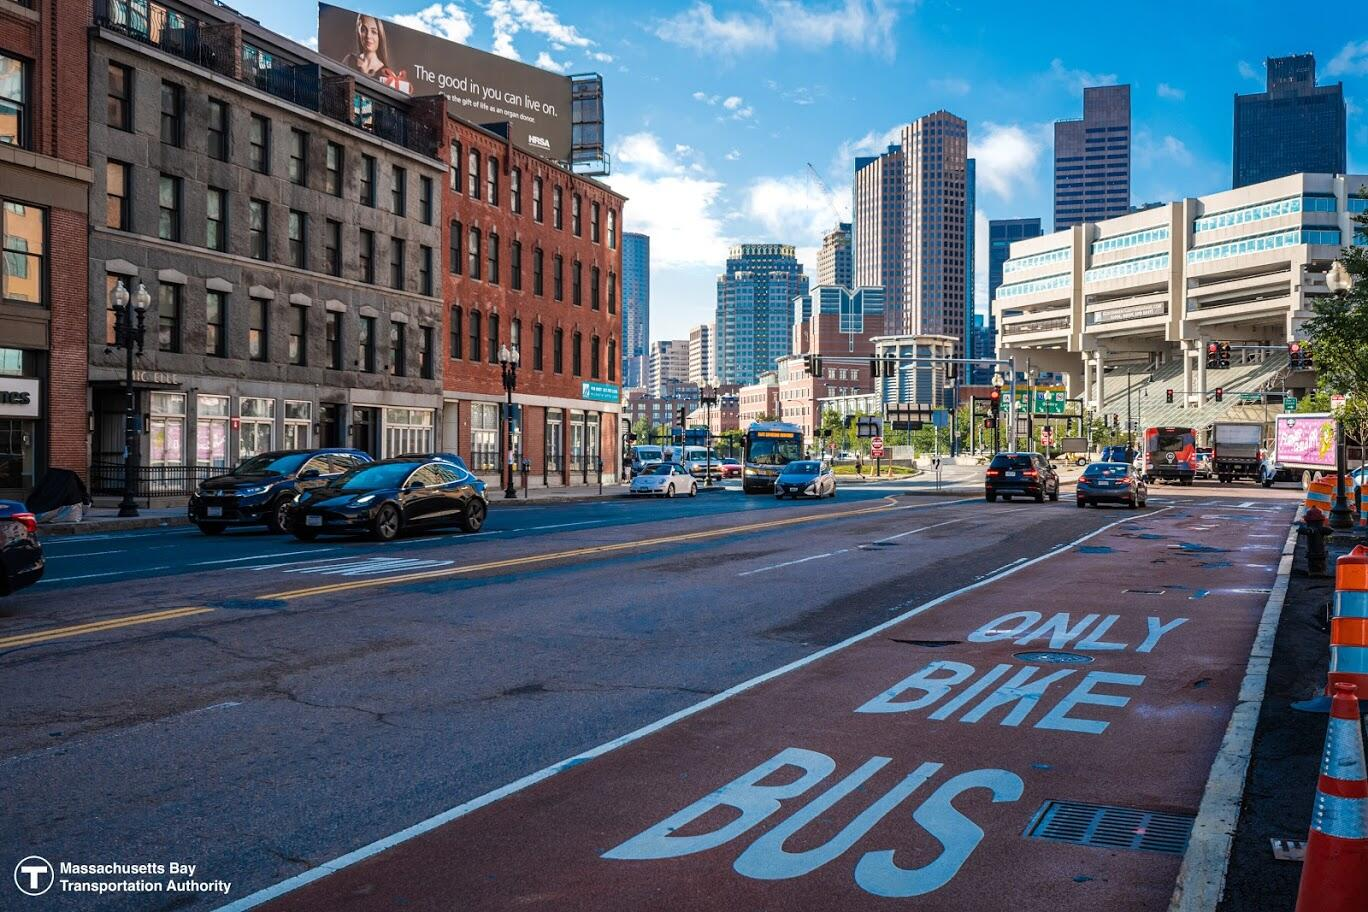 View of the shared bus/bike lane in Government Center Boston.